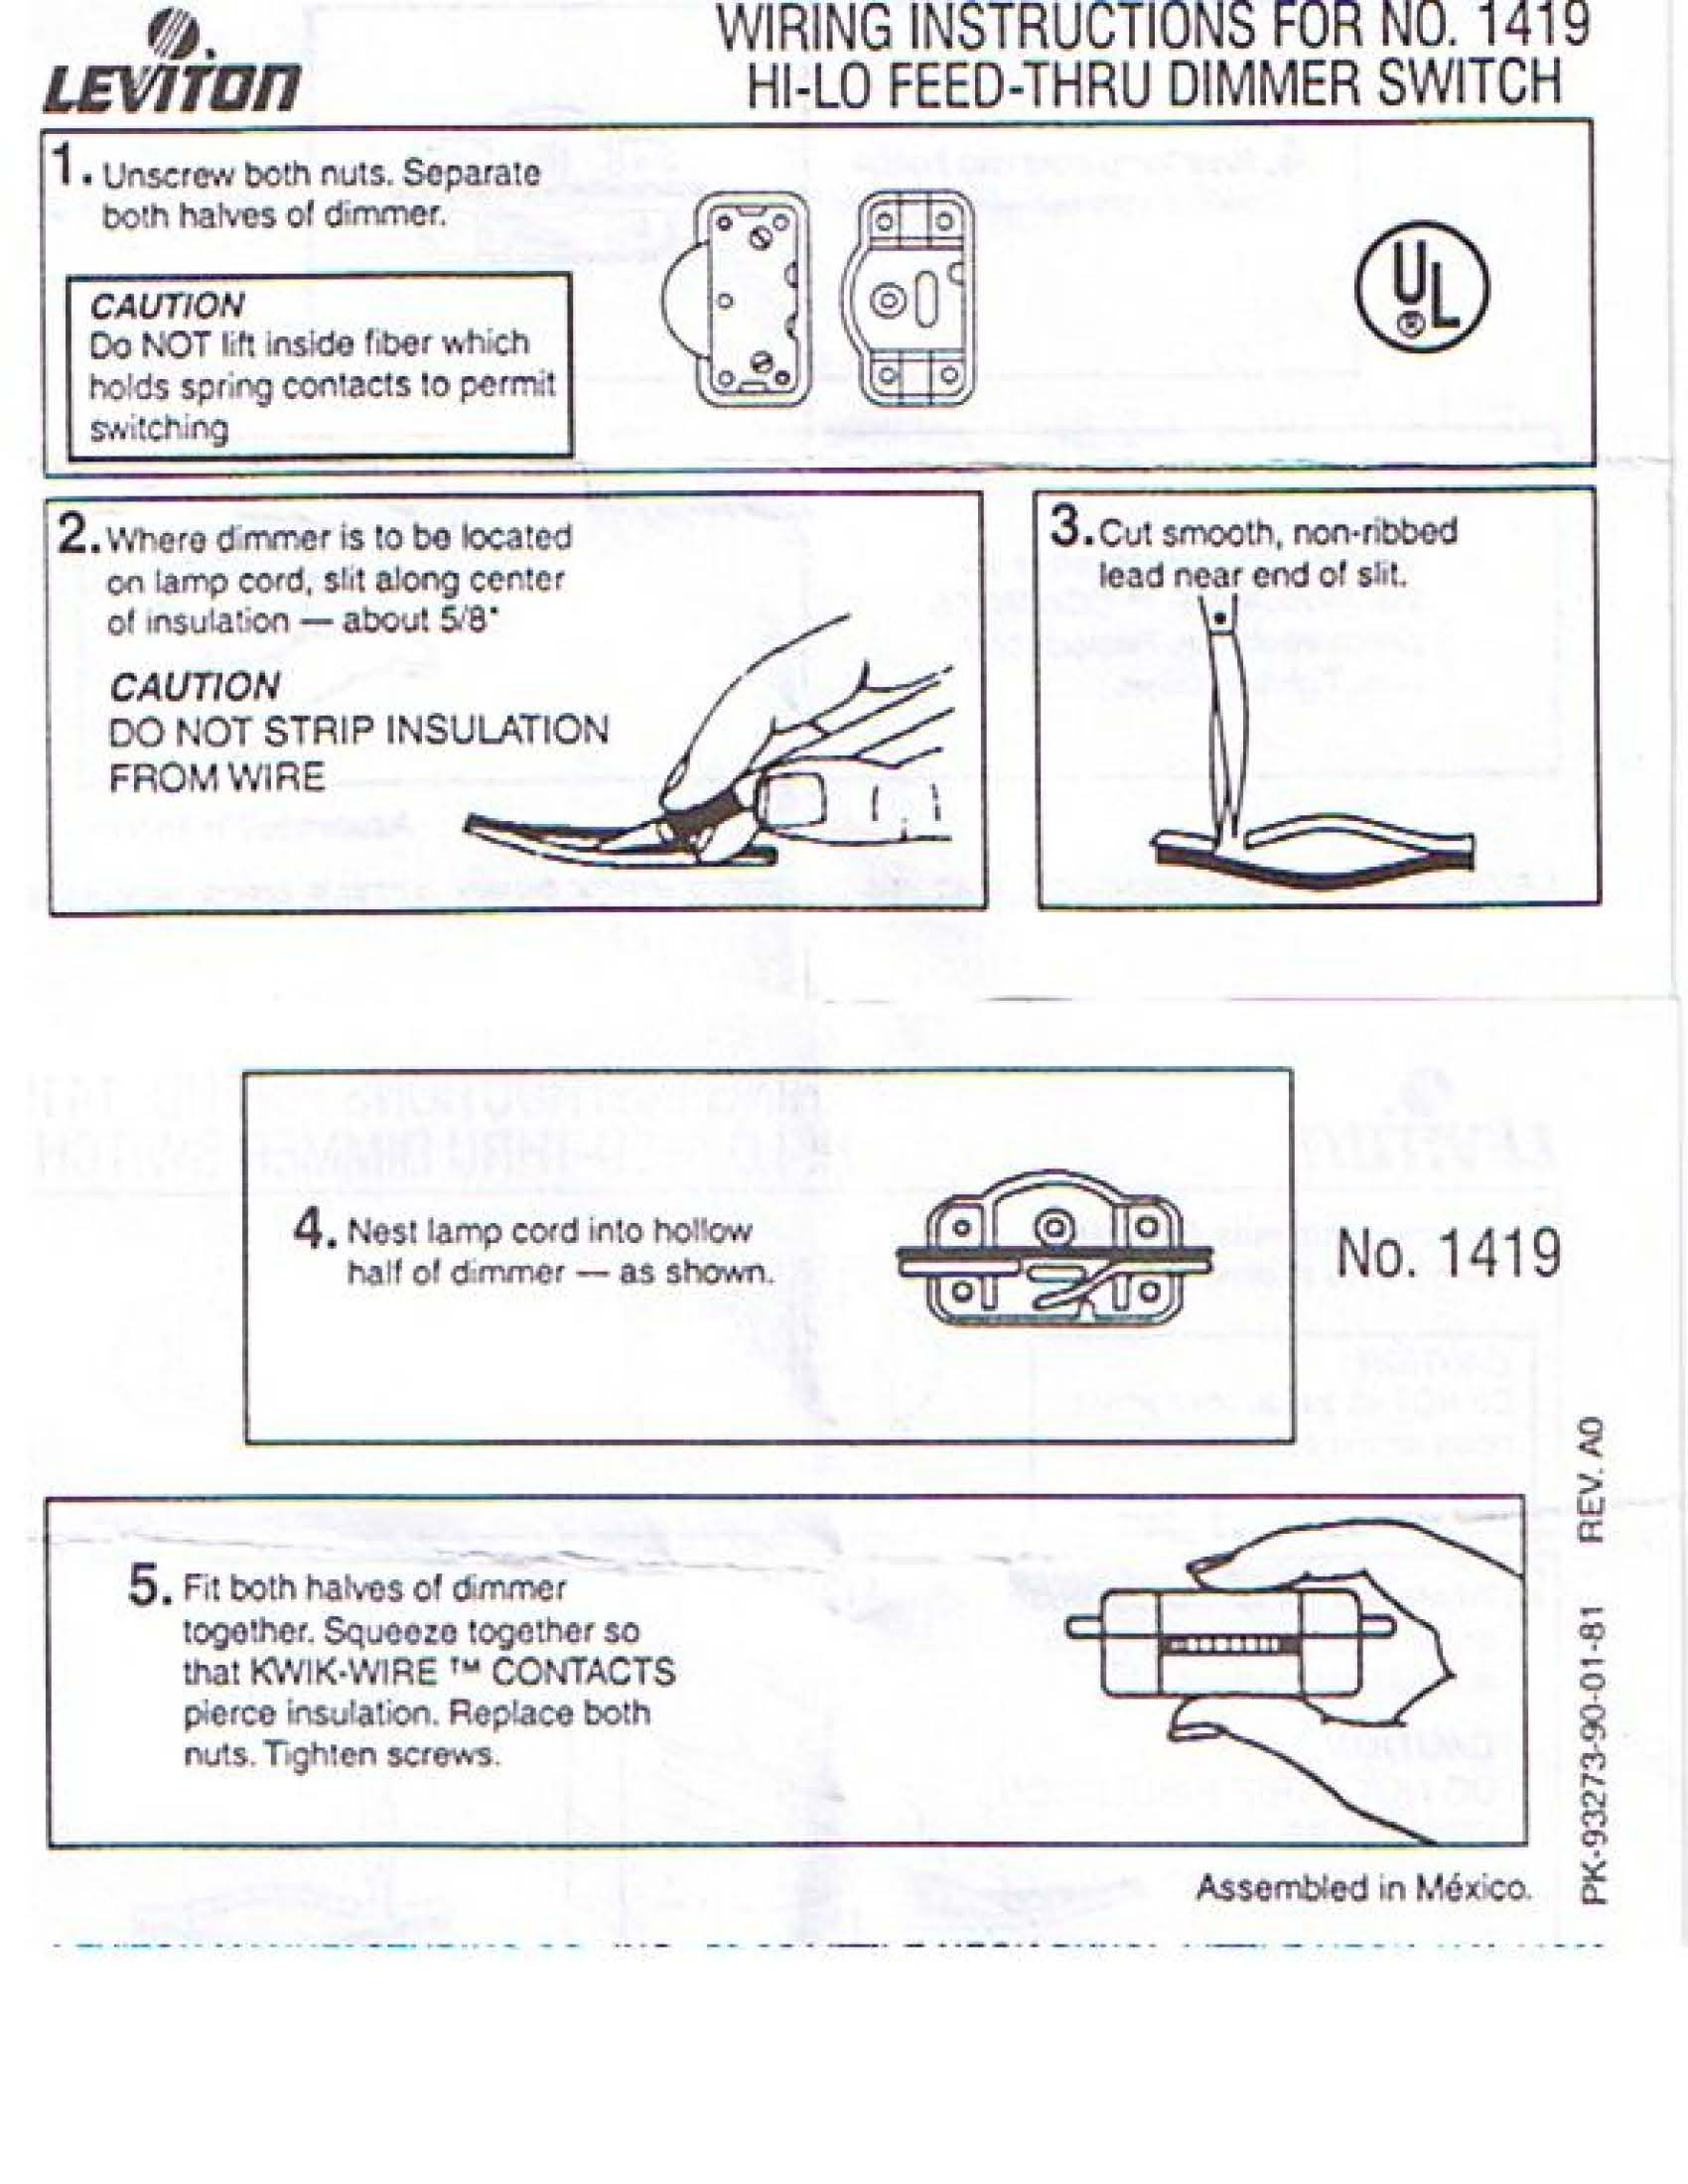 hight resolution of rotary on off lamp cord switch t rated neat easy to install no stripping of wires u l csa leviton brand find wiring instructions here